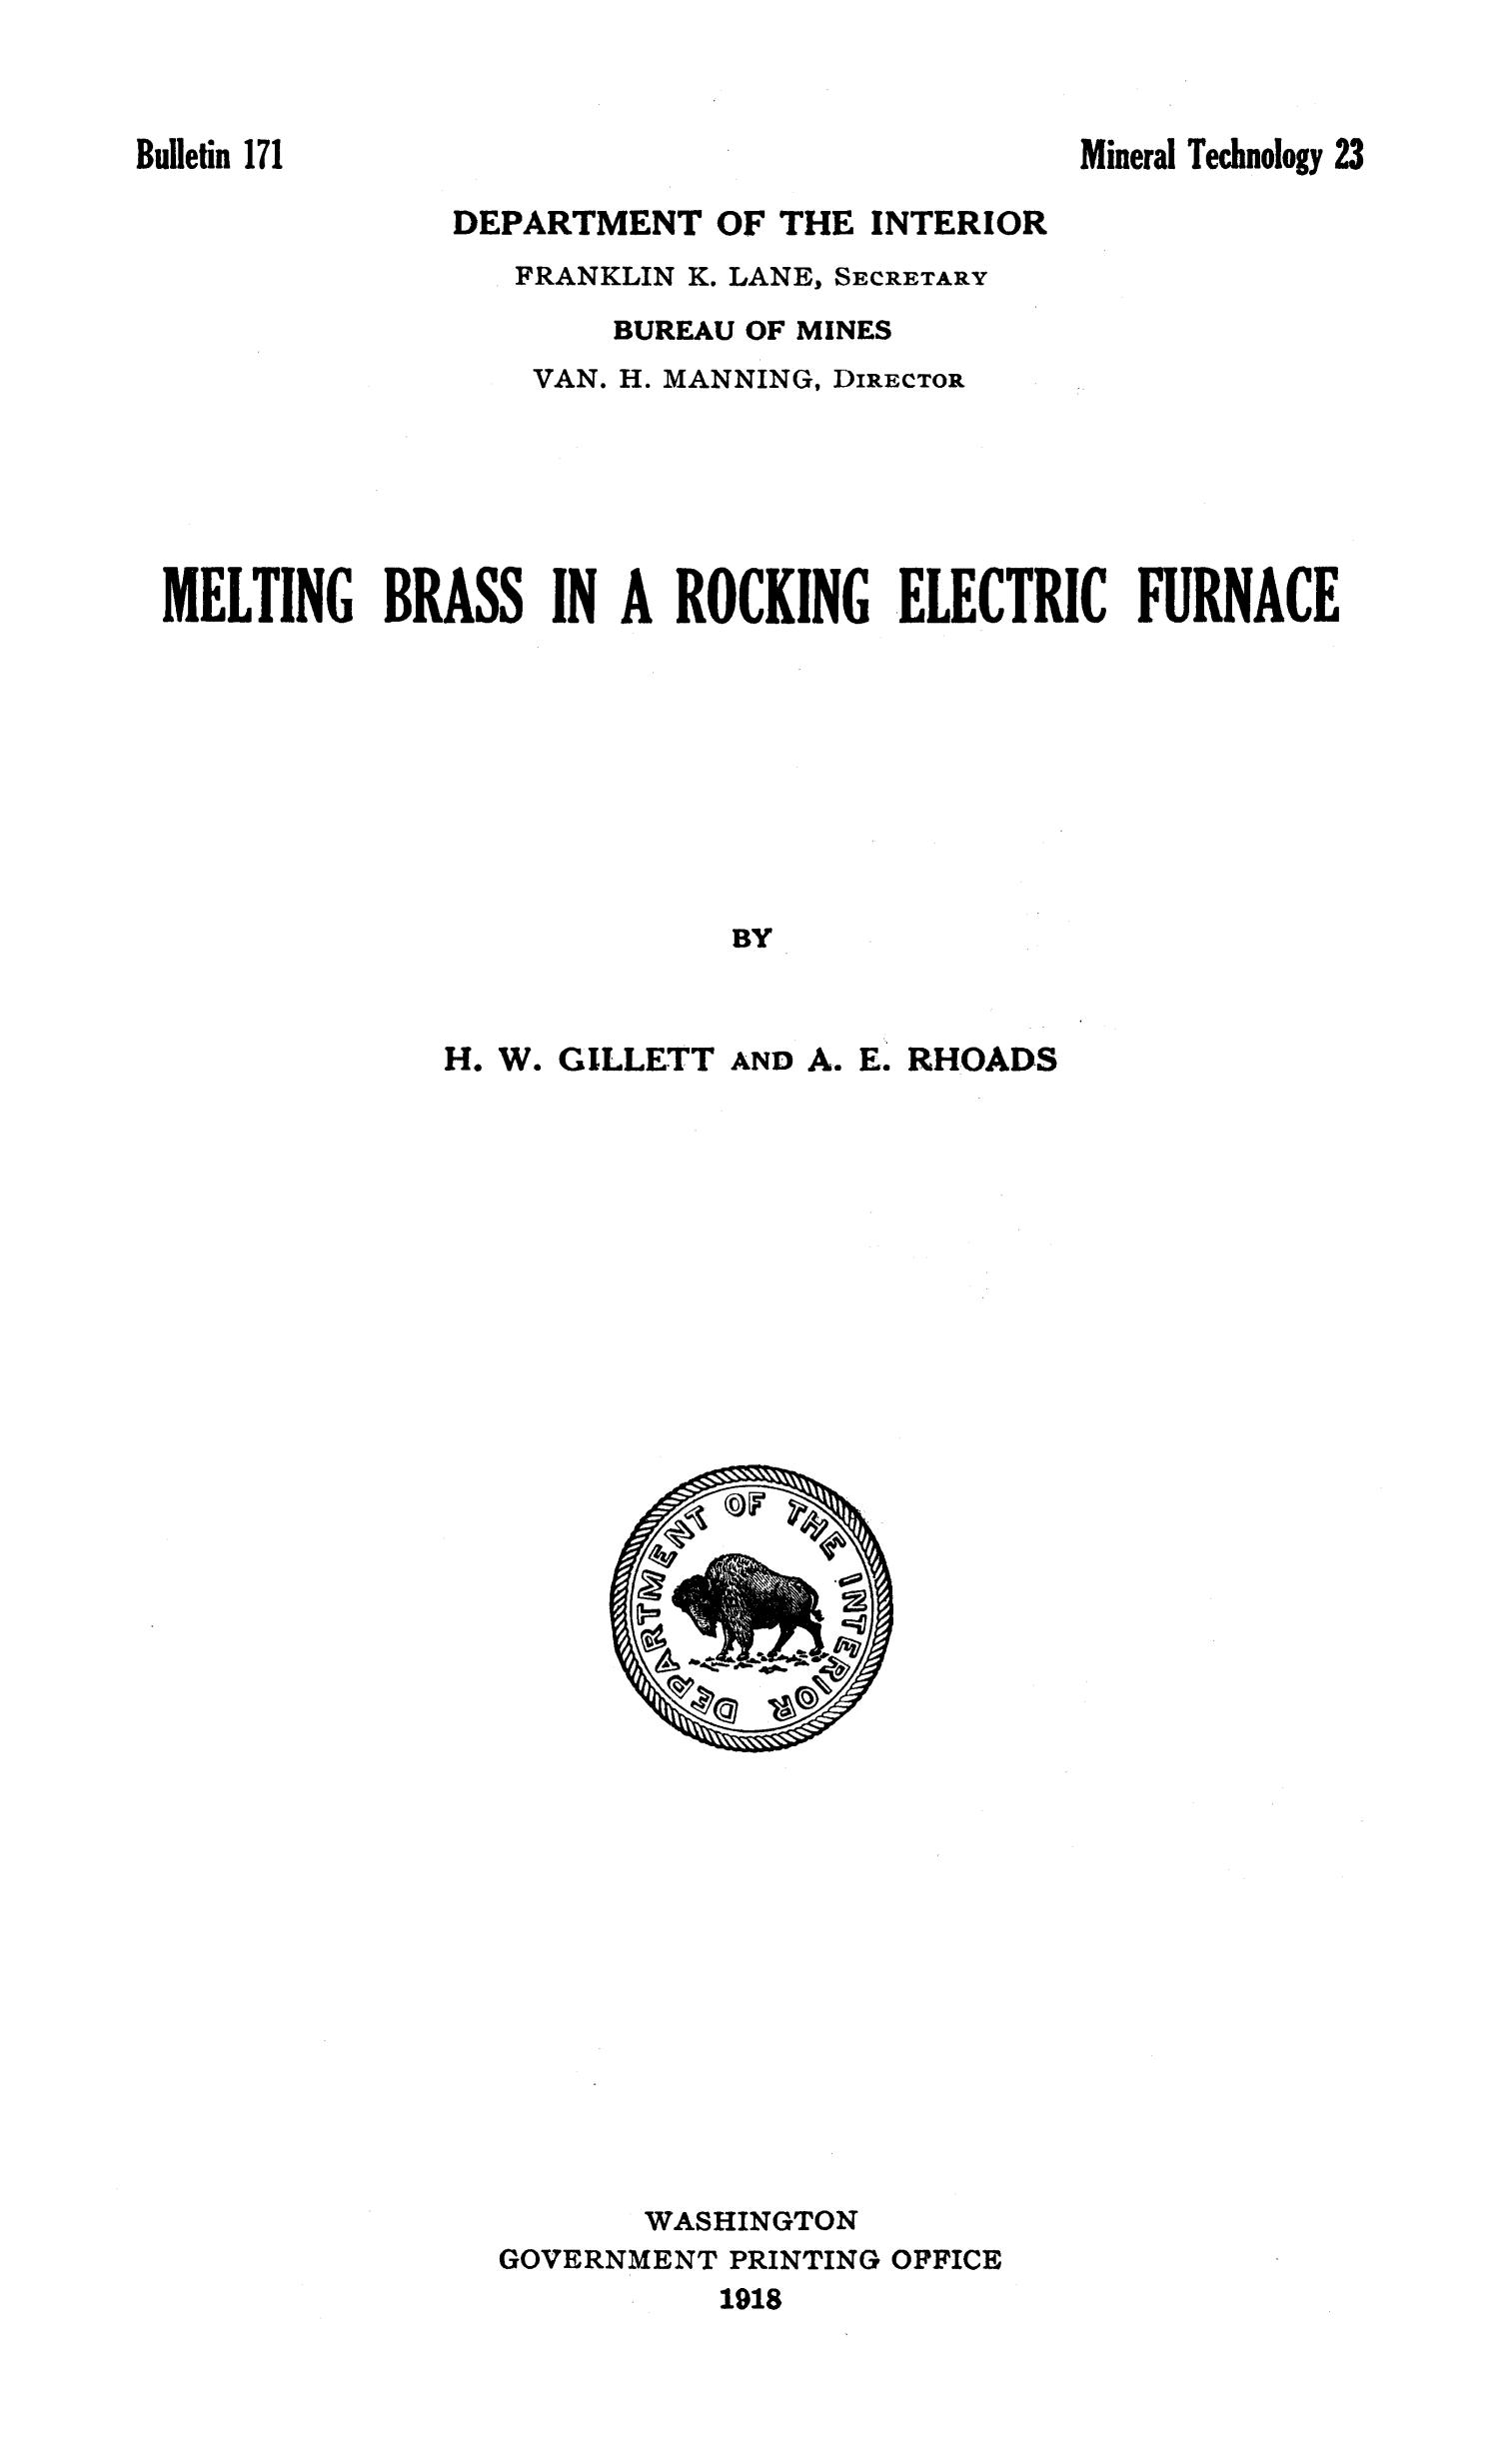 Melting Brass in a Rocking Electric Furnace                                                                                                      1